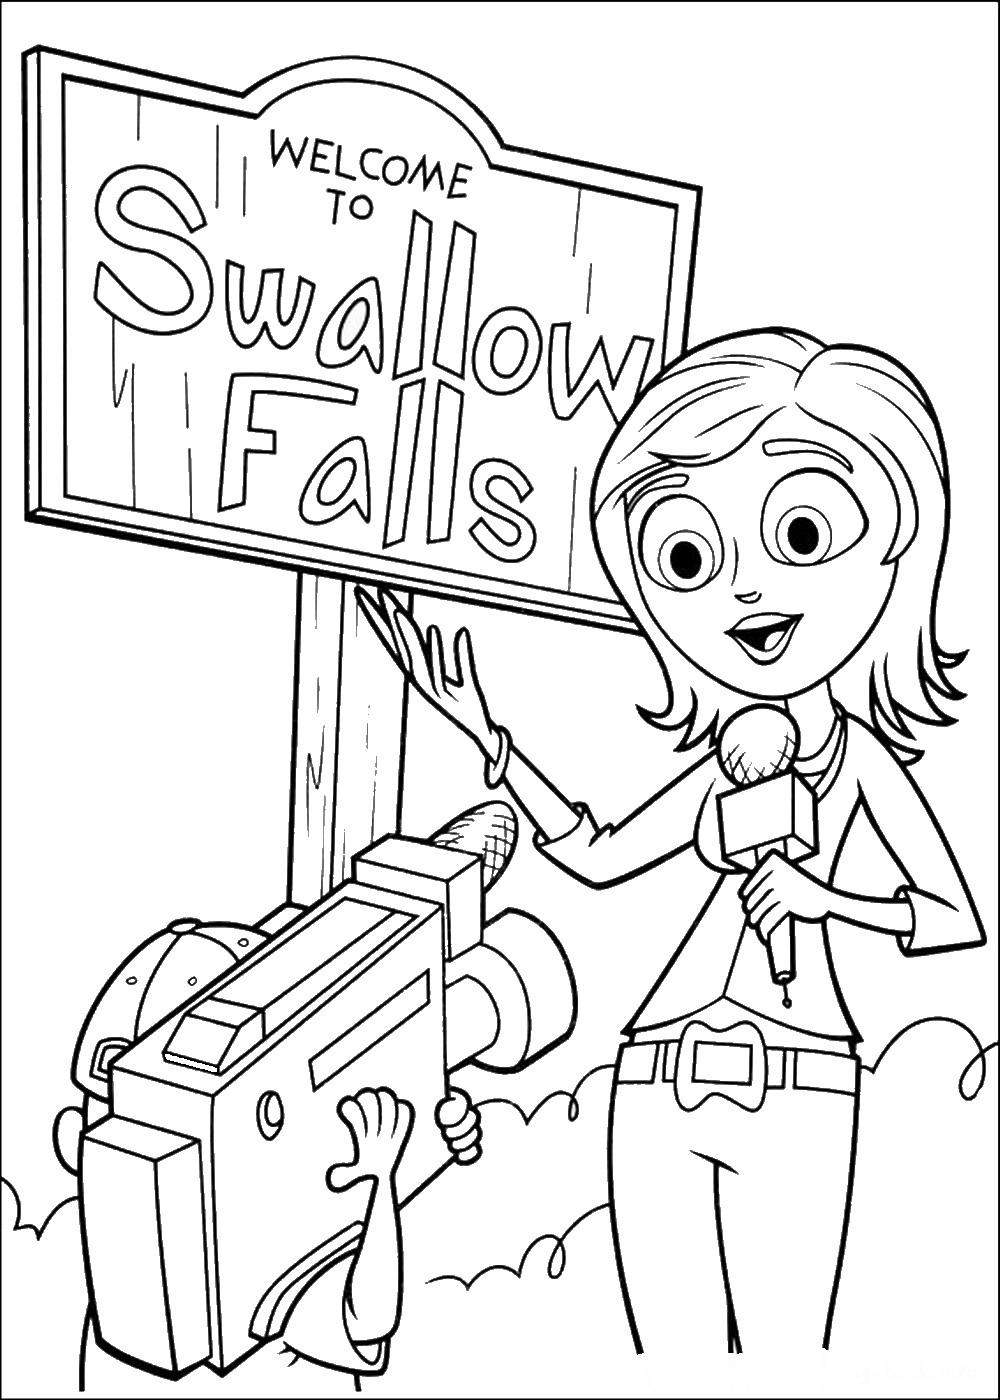 cloudy with a chance of meatballs 2 coloring pages berry from cloudy with a chance of meatballs 2 coloring of meatballs coloring 2 pages a with cloudy chance